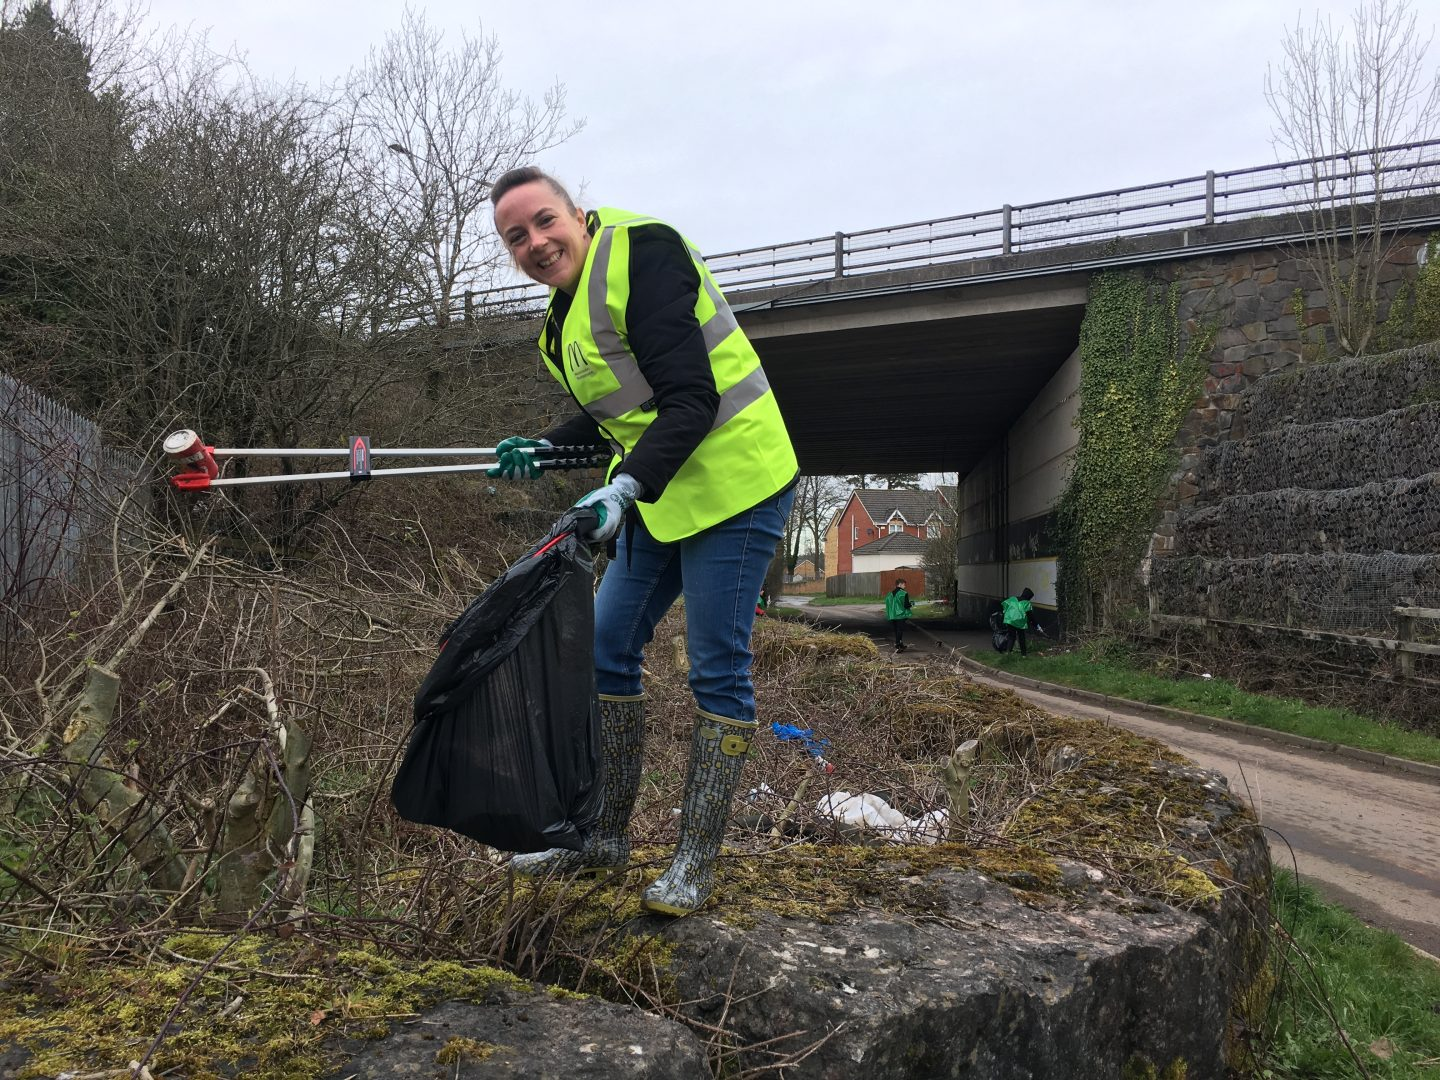 Nicola Carter from McDonald's Cardiff taking part in a litter pick organised by McDonald's and Keep Wales Tidy